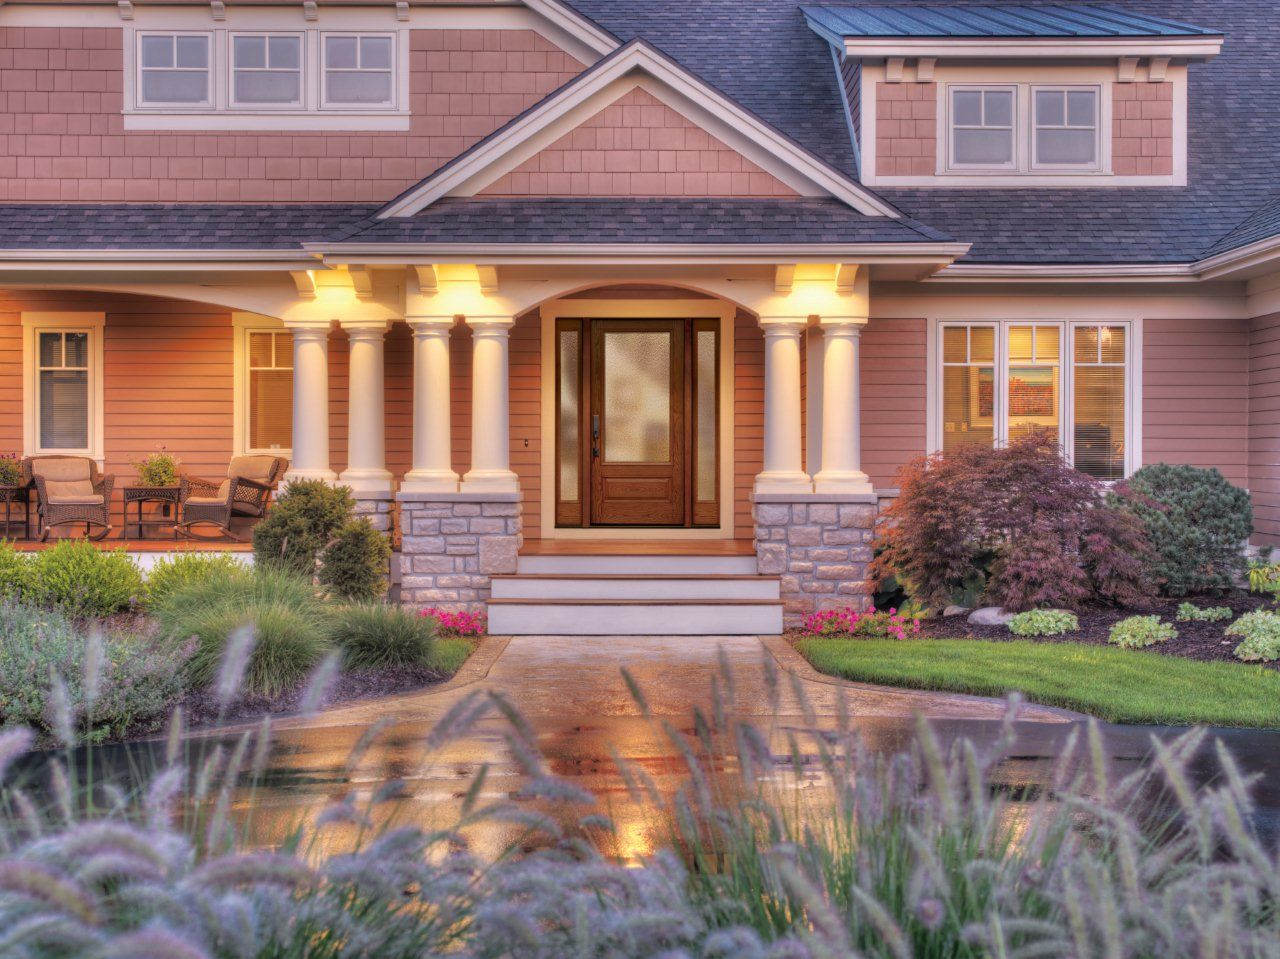 Front porch ideas in stone stone house pillar decoration